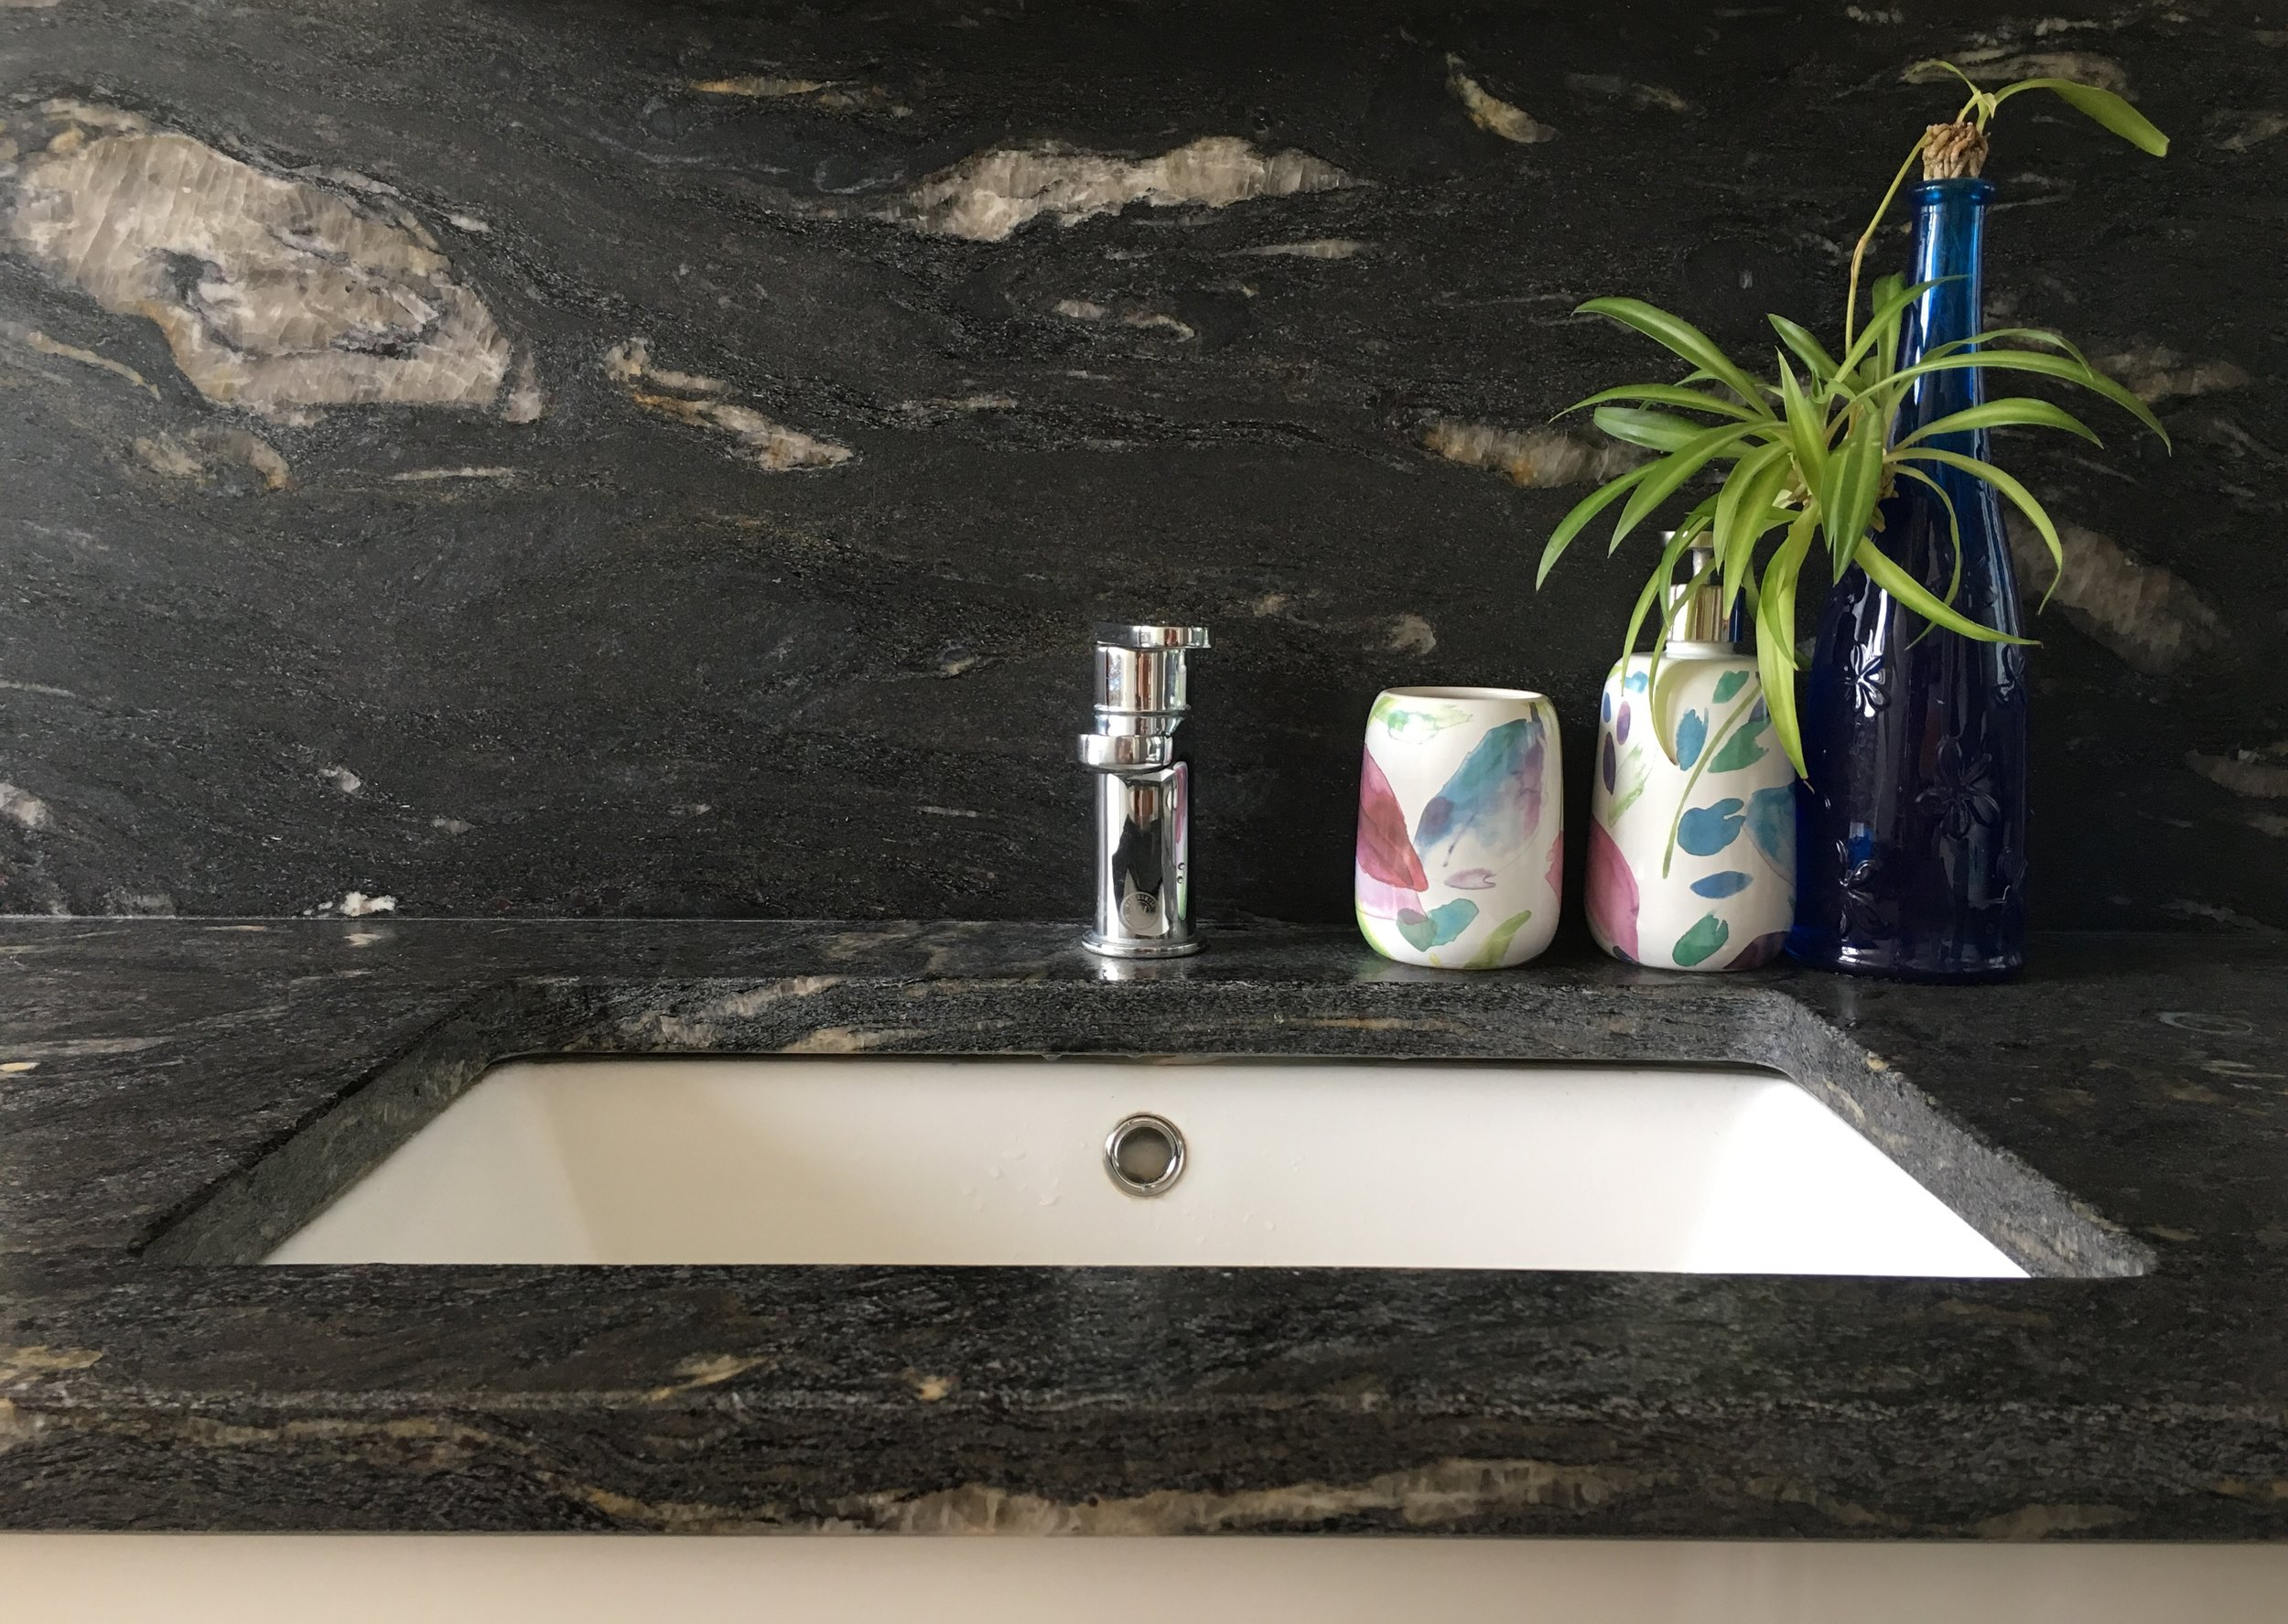 - We can help enhance your bathroom's look and class with our stone, whether it's for sinks or tiles.